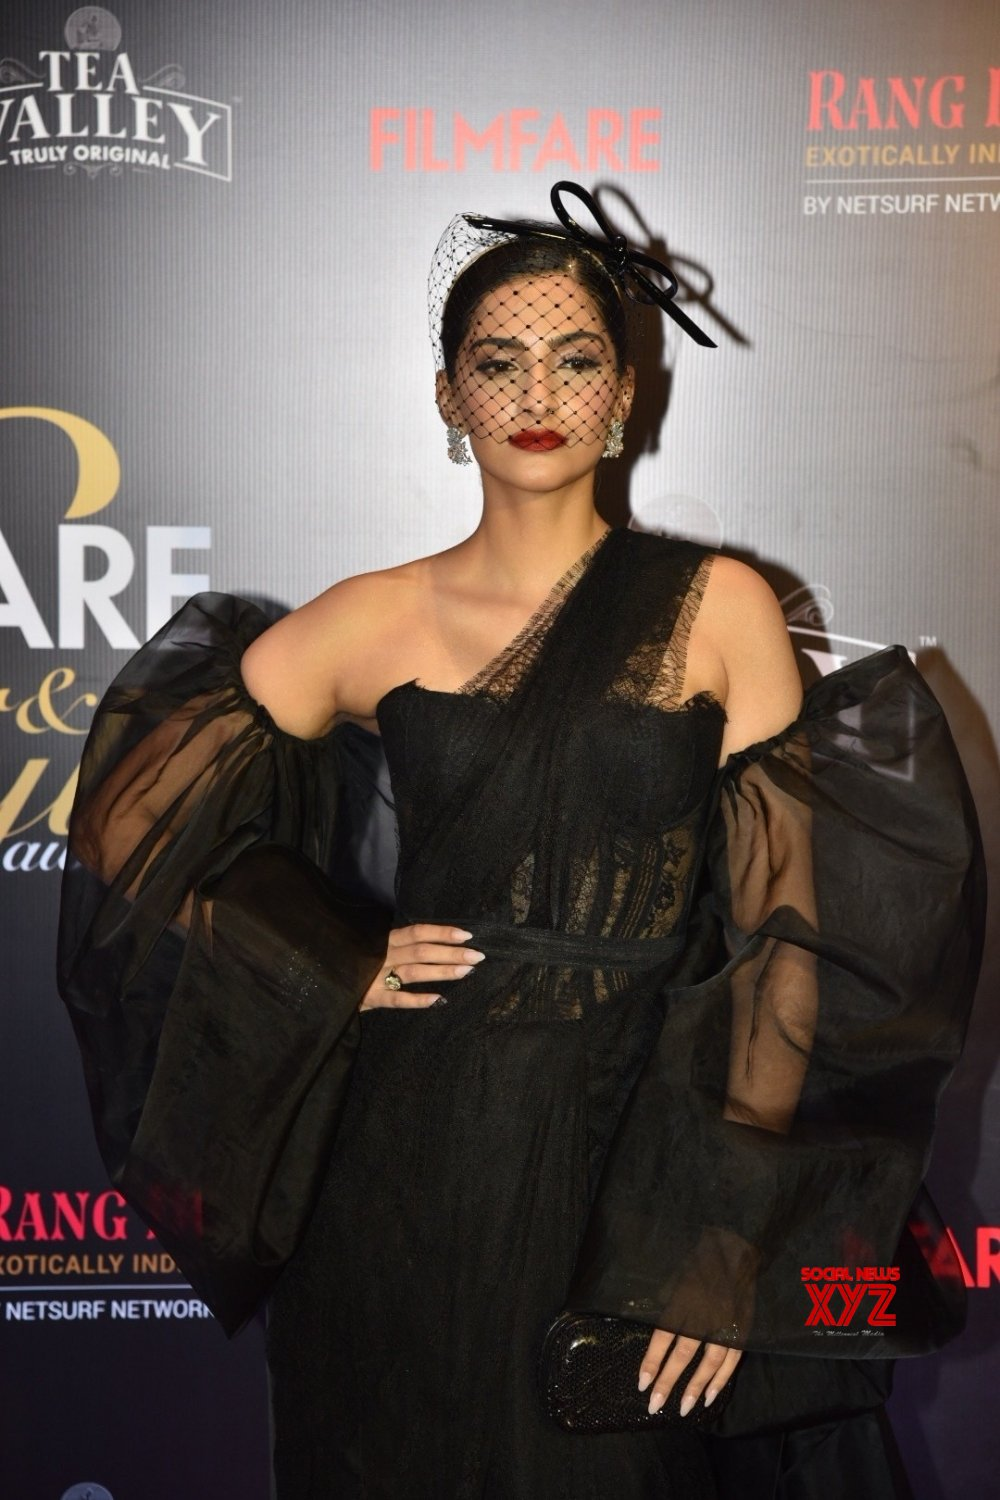 Mumbai: Filmfare Glamour And Style Awards 2019 - Sonam Kapoor #Gallery